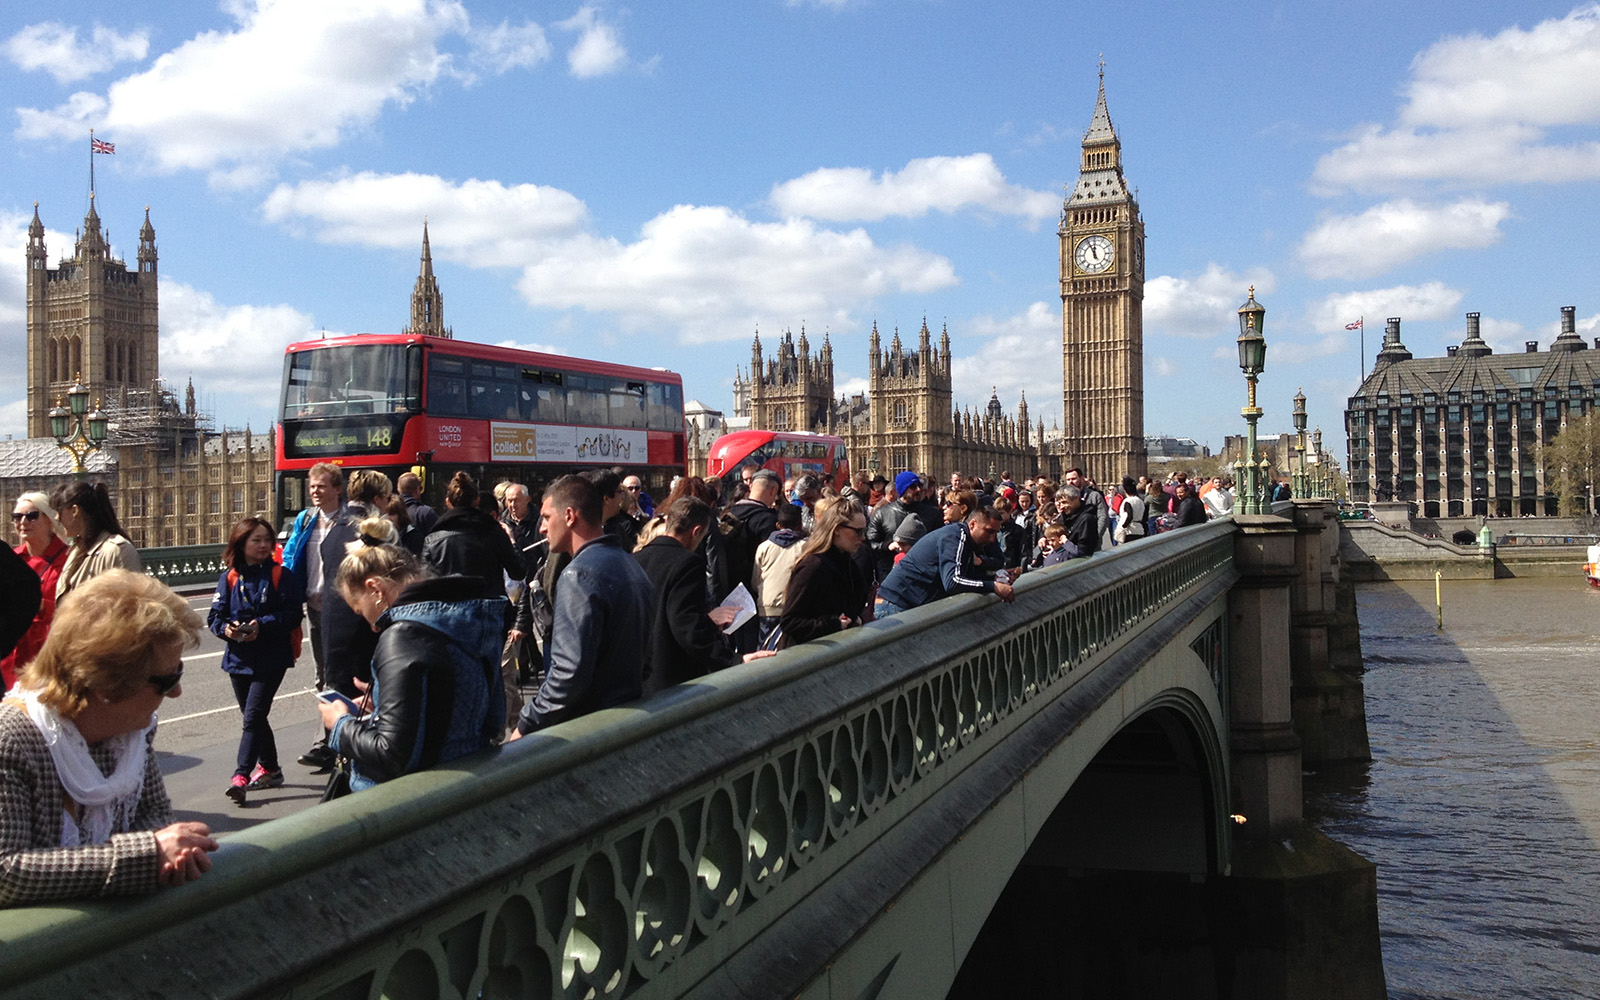 sonnet composed upon westminster bridge Poem of the week: composed upon westminster bridge, september 3, 1802 by william wordsworth a stately sonnet, composed early in the industrial revolution.